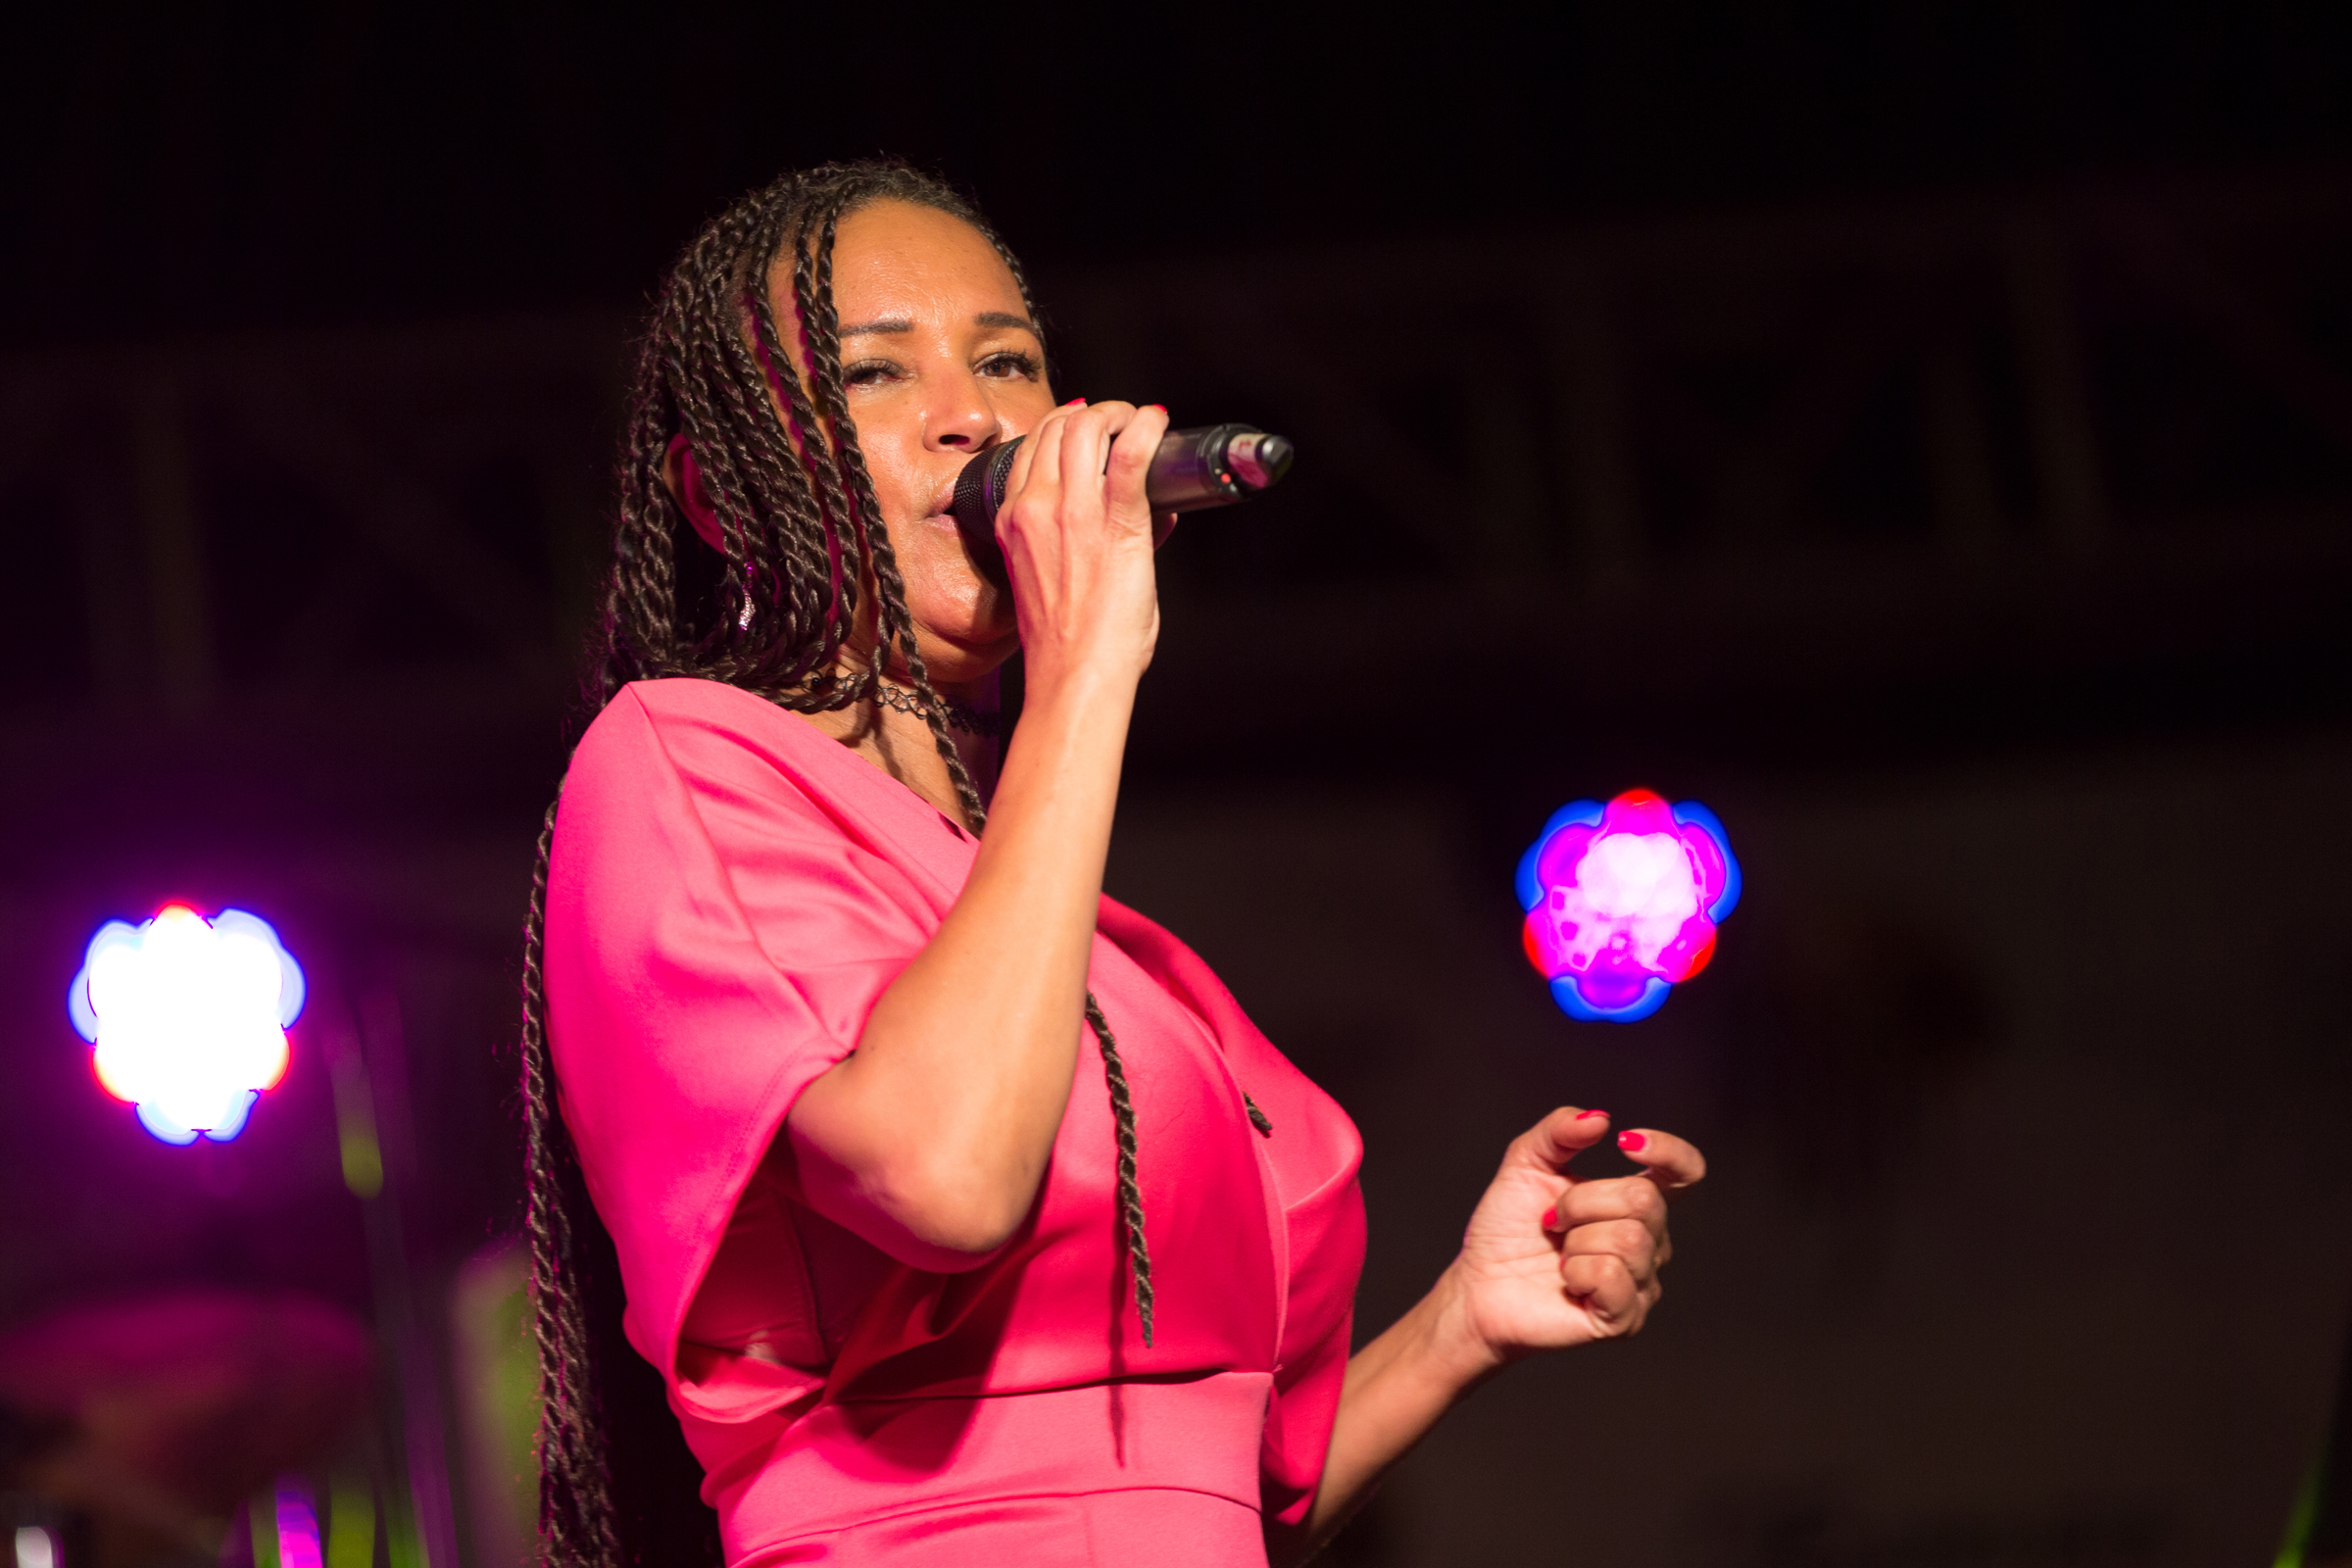 Cape Verdean vocalist Maria de Barros, performing barefoot as did her godmother Cesaria Evora, and her band on stage at MASA 2018. She is also putting the finishing touches on her 4th album. Luminous Coladeiras, both fast and slow, had the crowd swaying, before she finished with a driving funana.